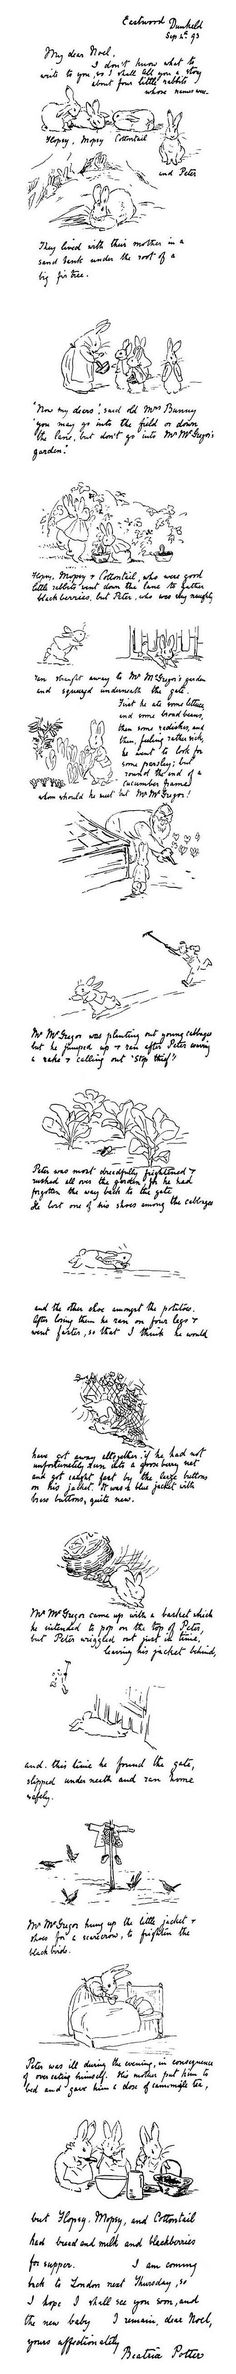 The Tale of Peter Rabbit by Beatrix Potter in its original form, a letter to the five-year-old son of a friend.